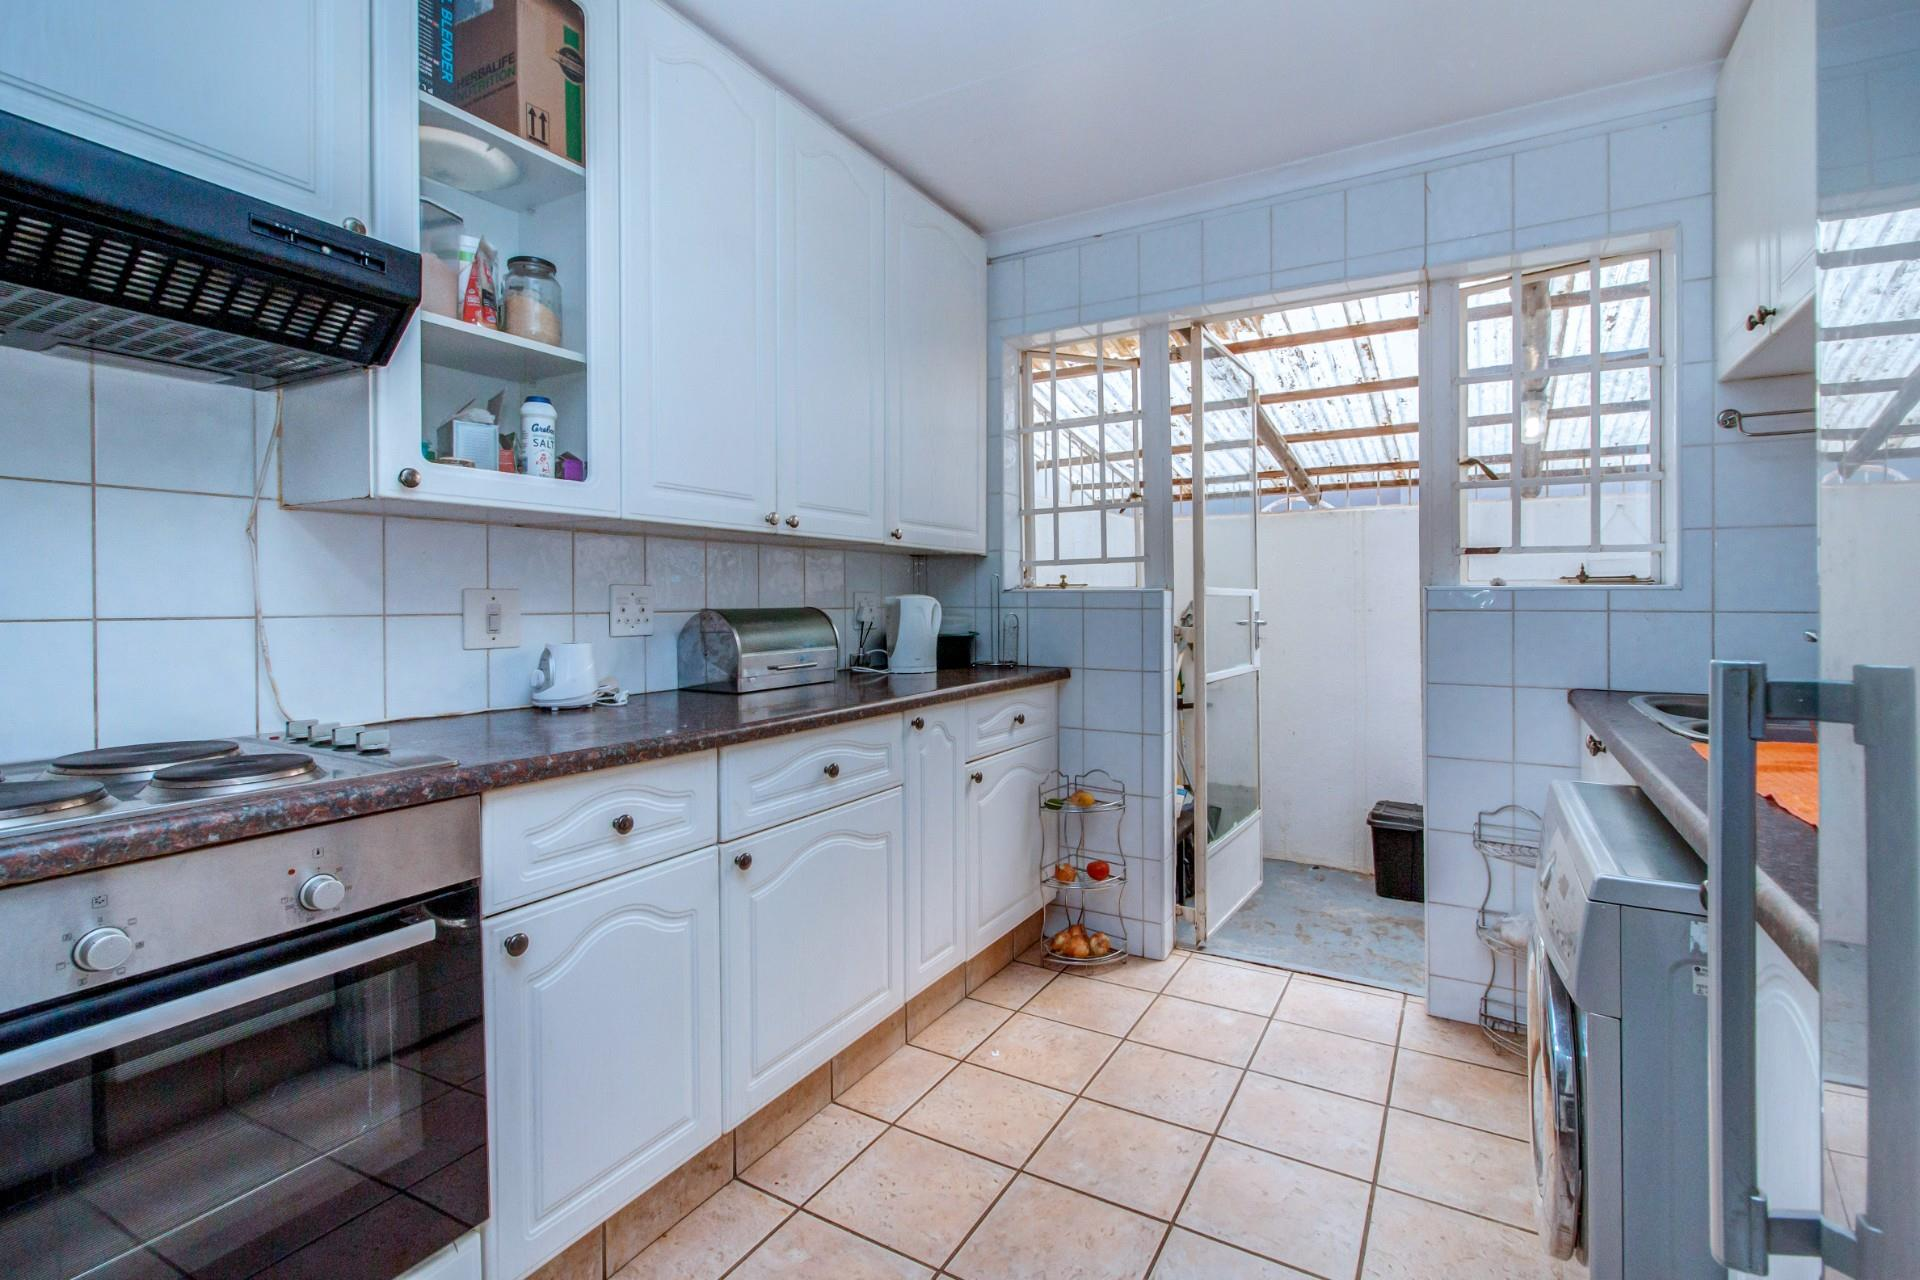 3 Bedroom House For Sale in Northwold Gardens